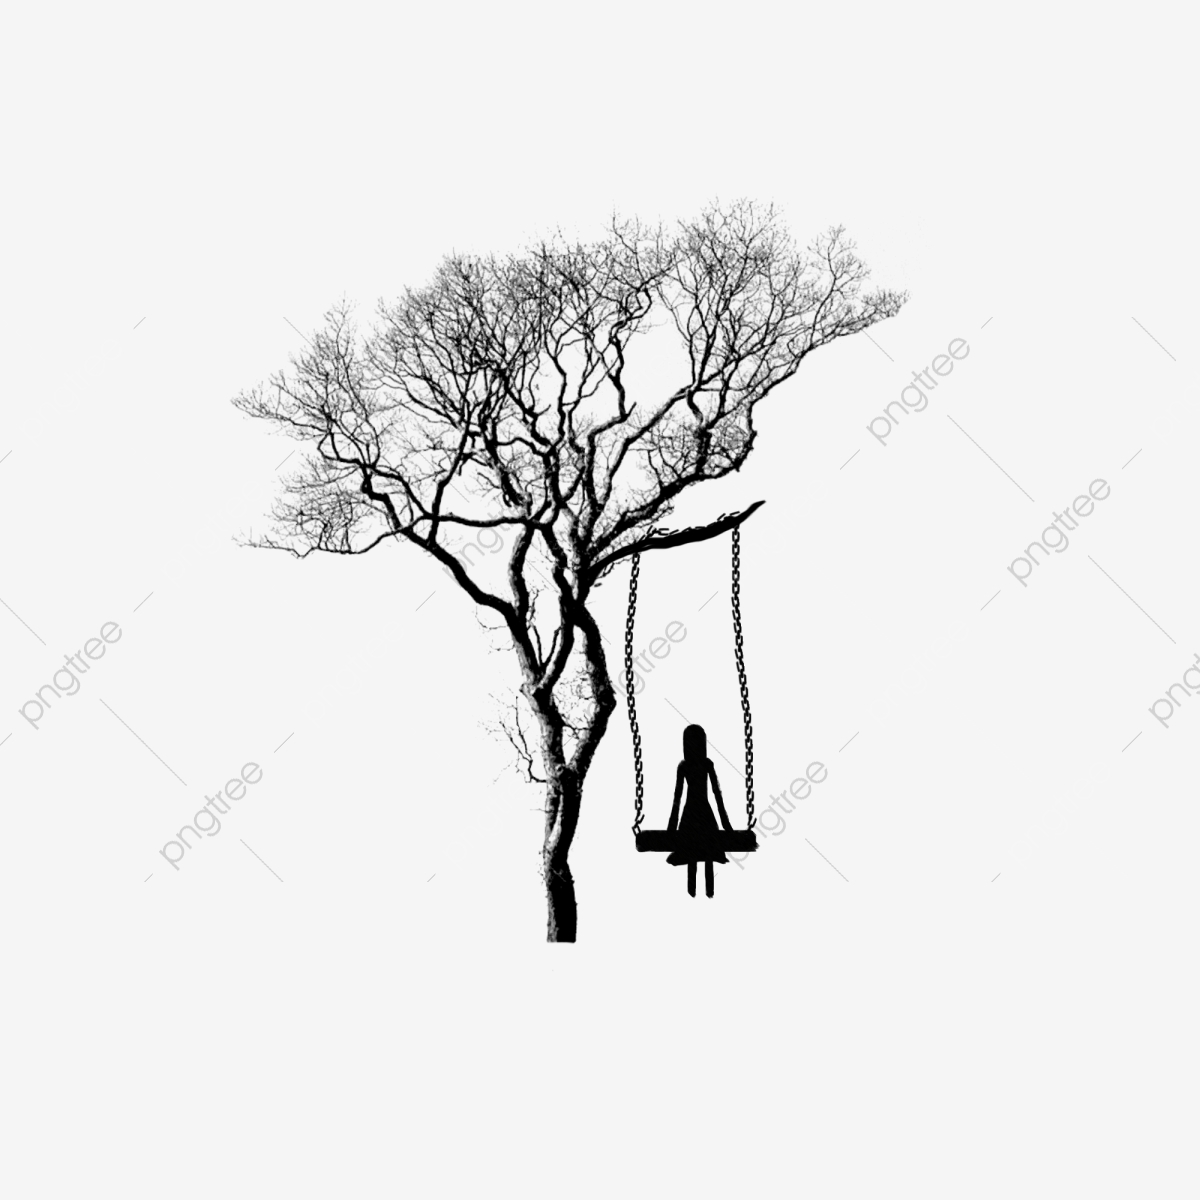 Black Tree Man Silhouette Cartoon Design Material Black Cartoon Tree Png Transparent Image And Clipart For Free Download The best selection of royalty free cartoon tree man vector art, graphics and stock illustrations. https pngtree com freepng black tree man silhouette cartoon design material 4077673 html